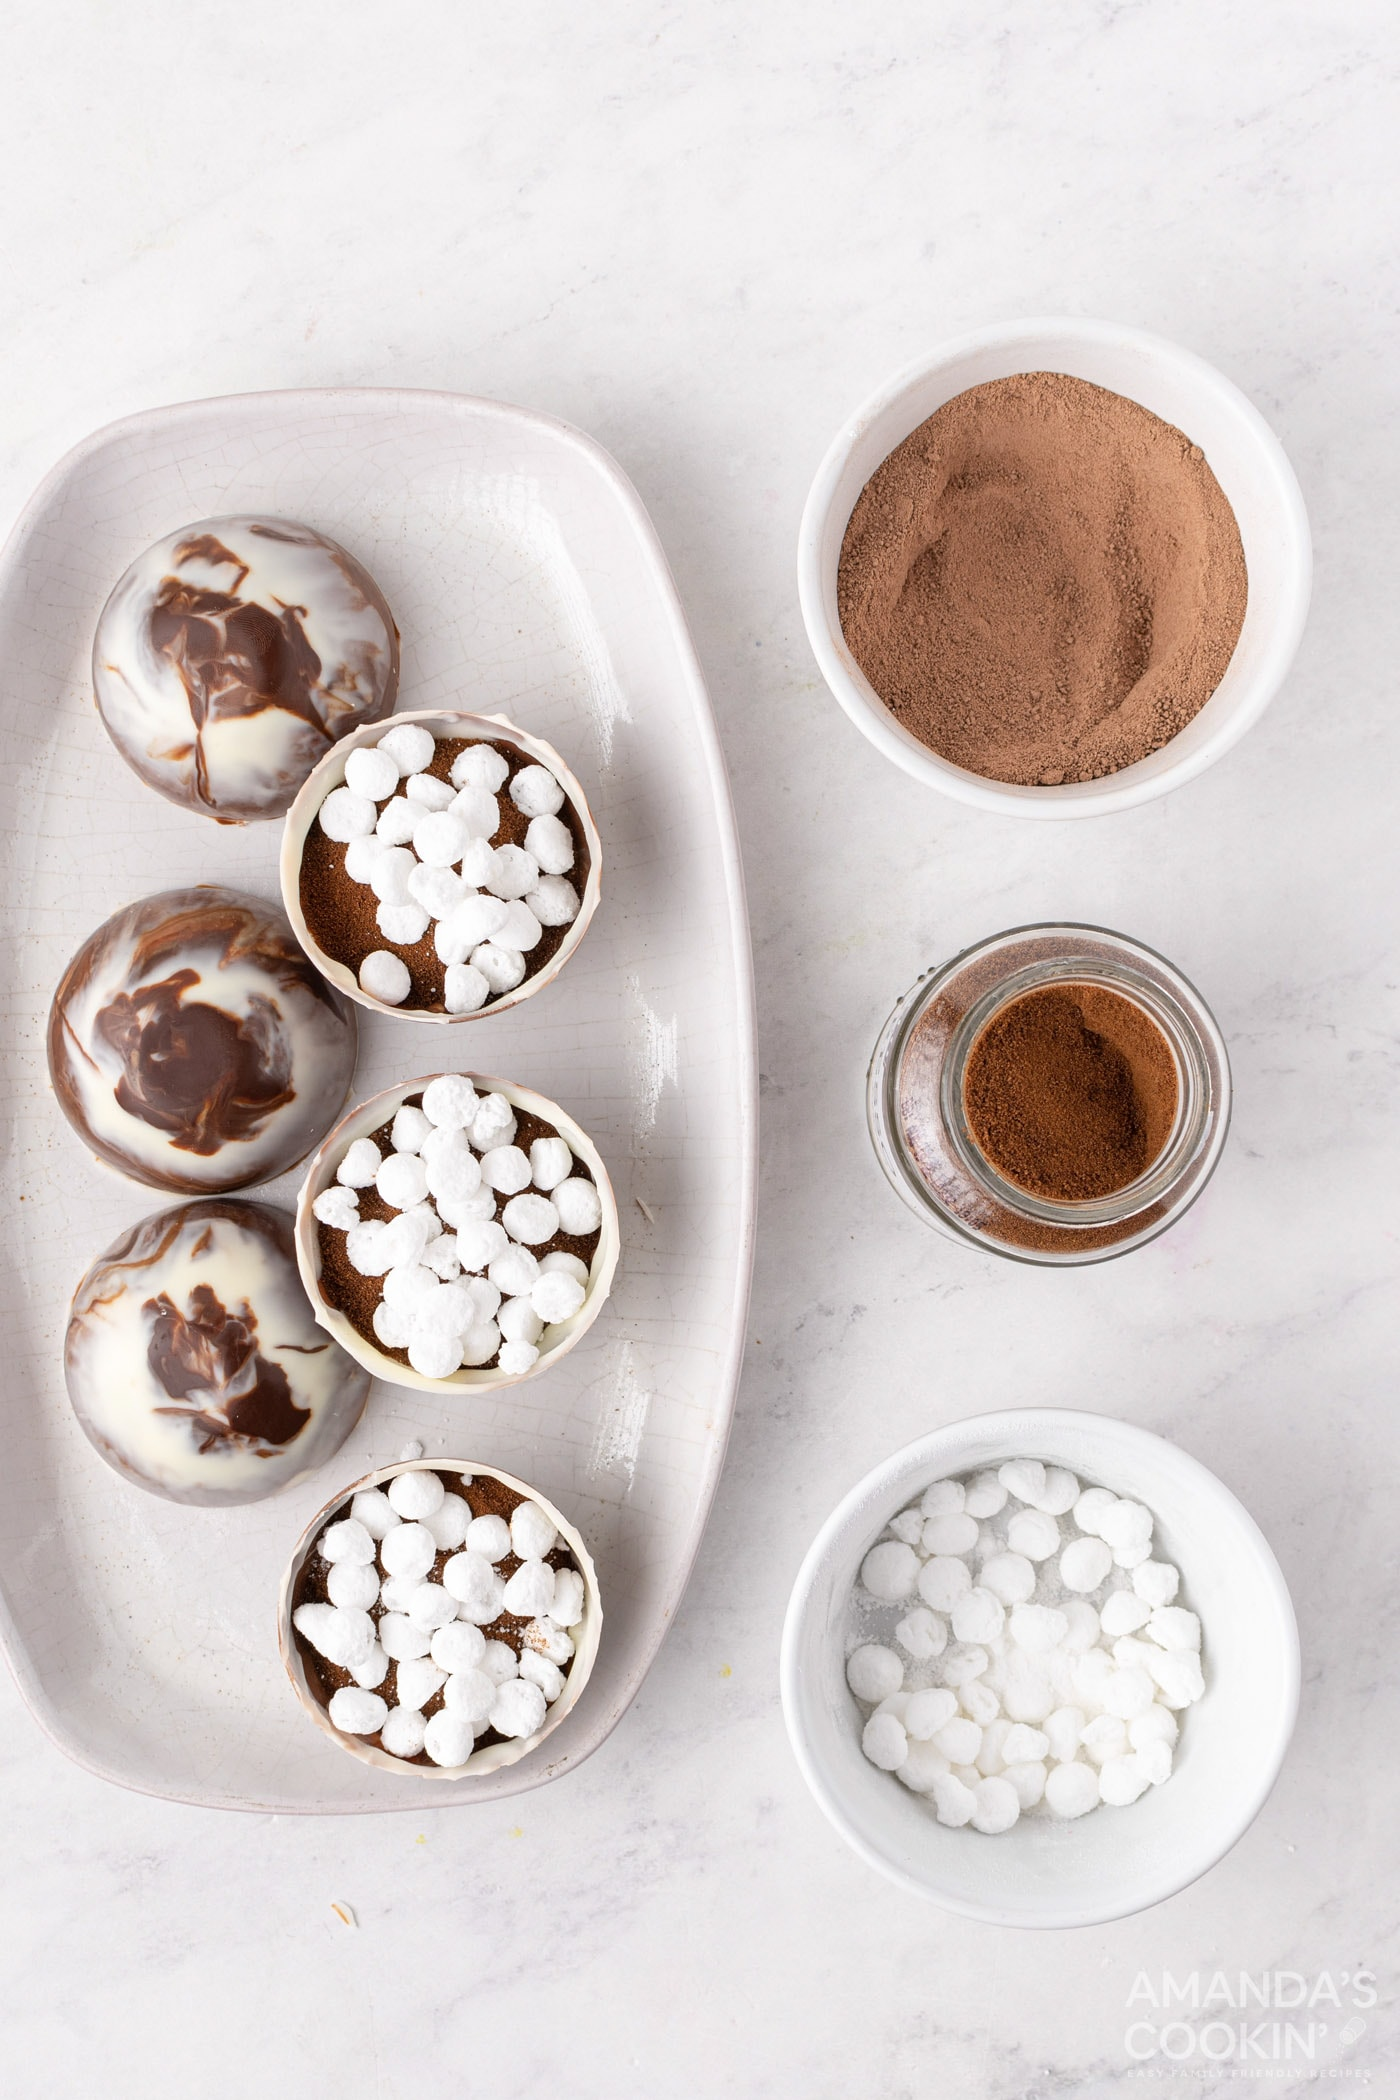 espresso and marshmallows in bomb molds